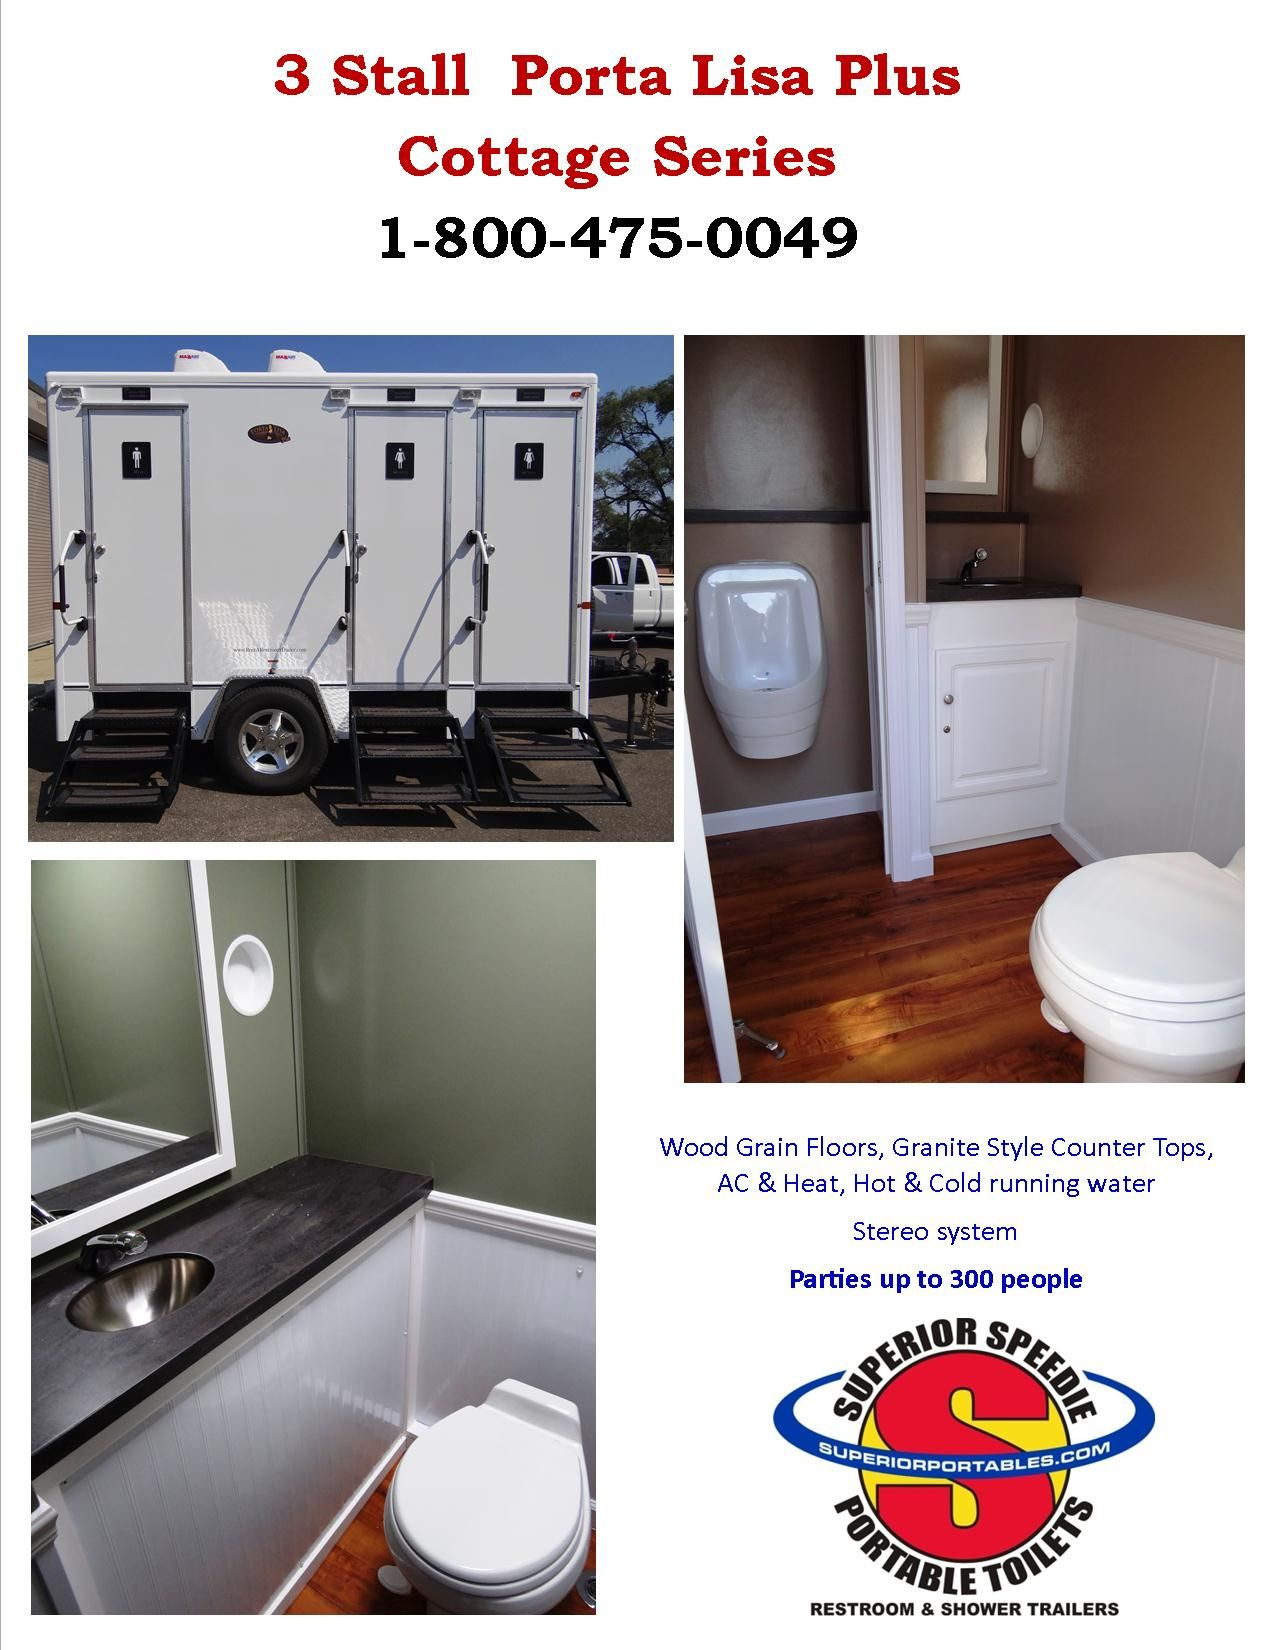 brand new luxury restroom trailer perfect for parties up to 350